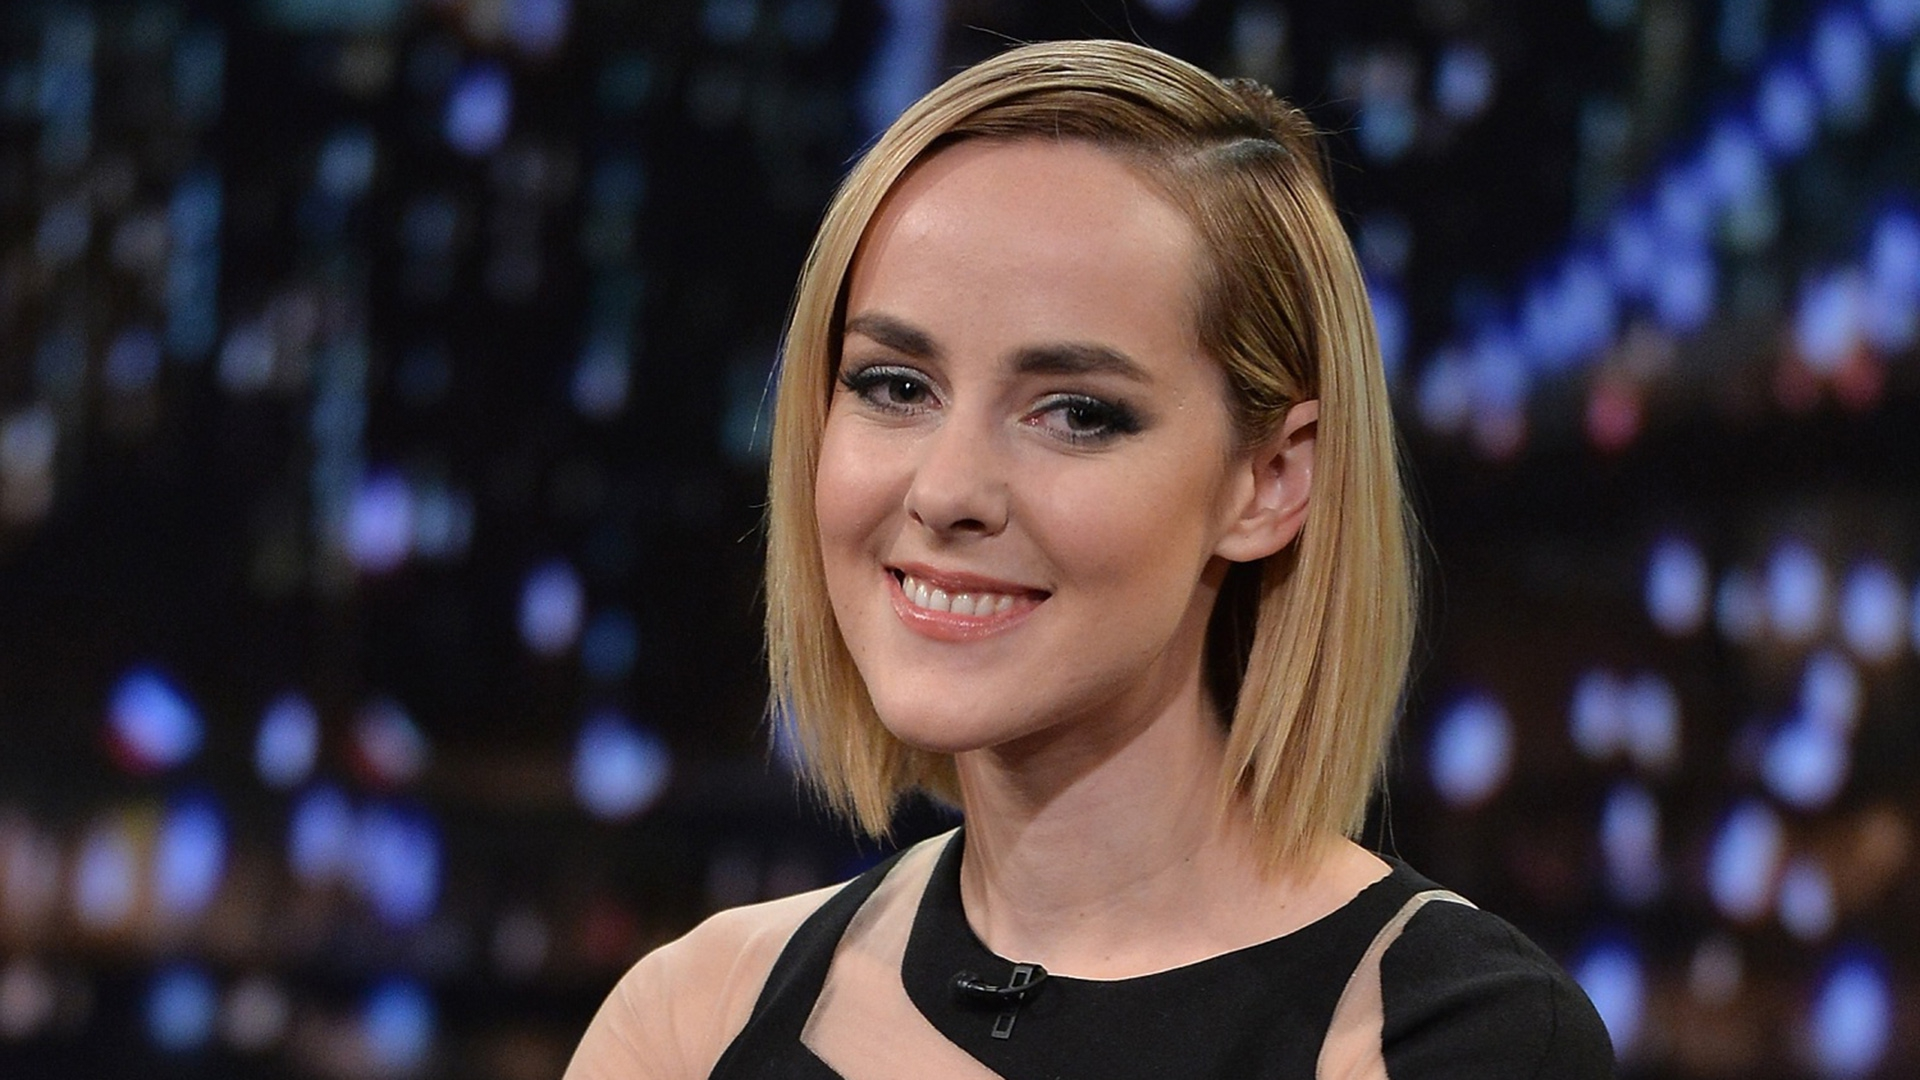 Jena Malone smile computer wallpaper